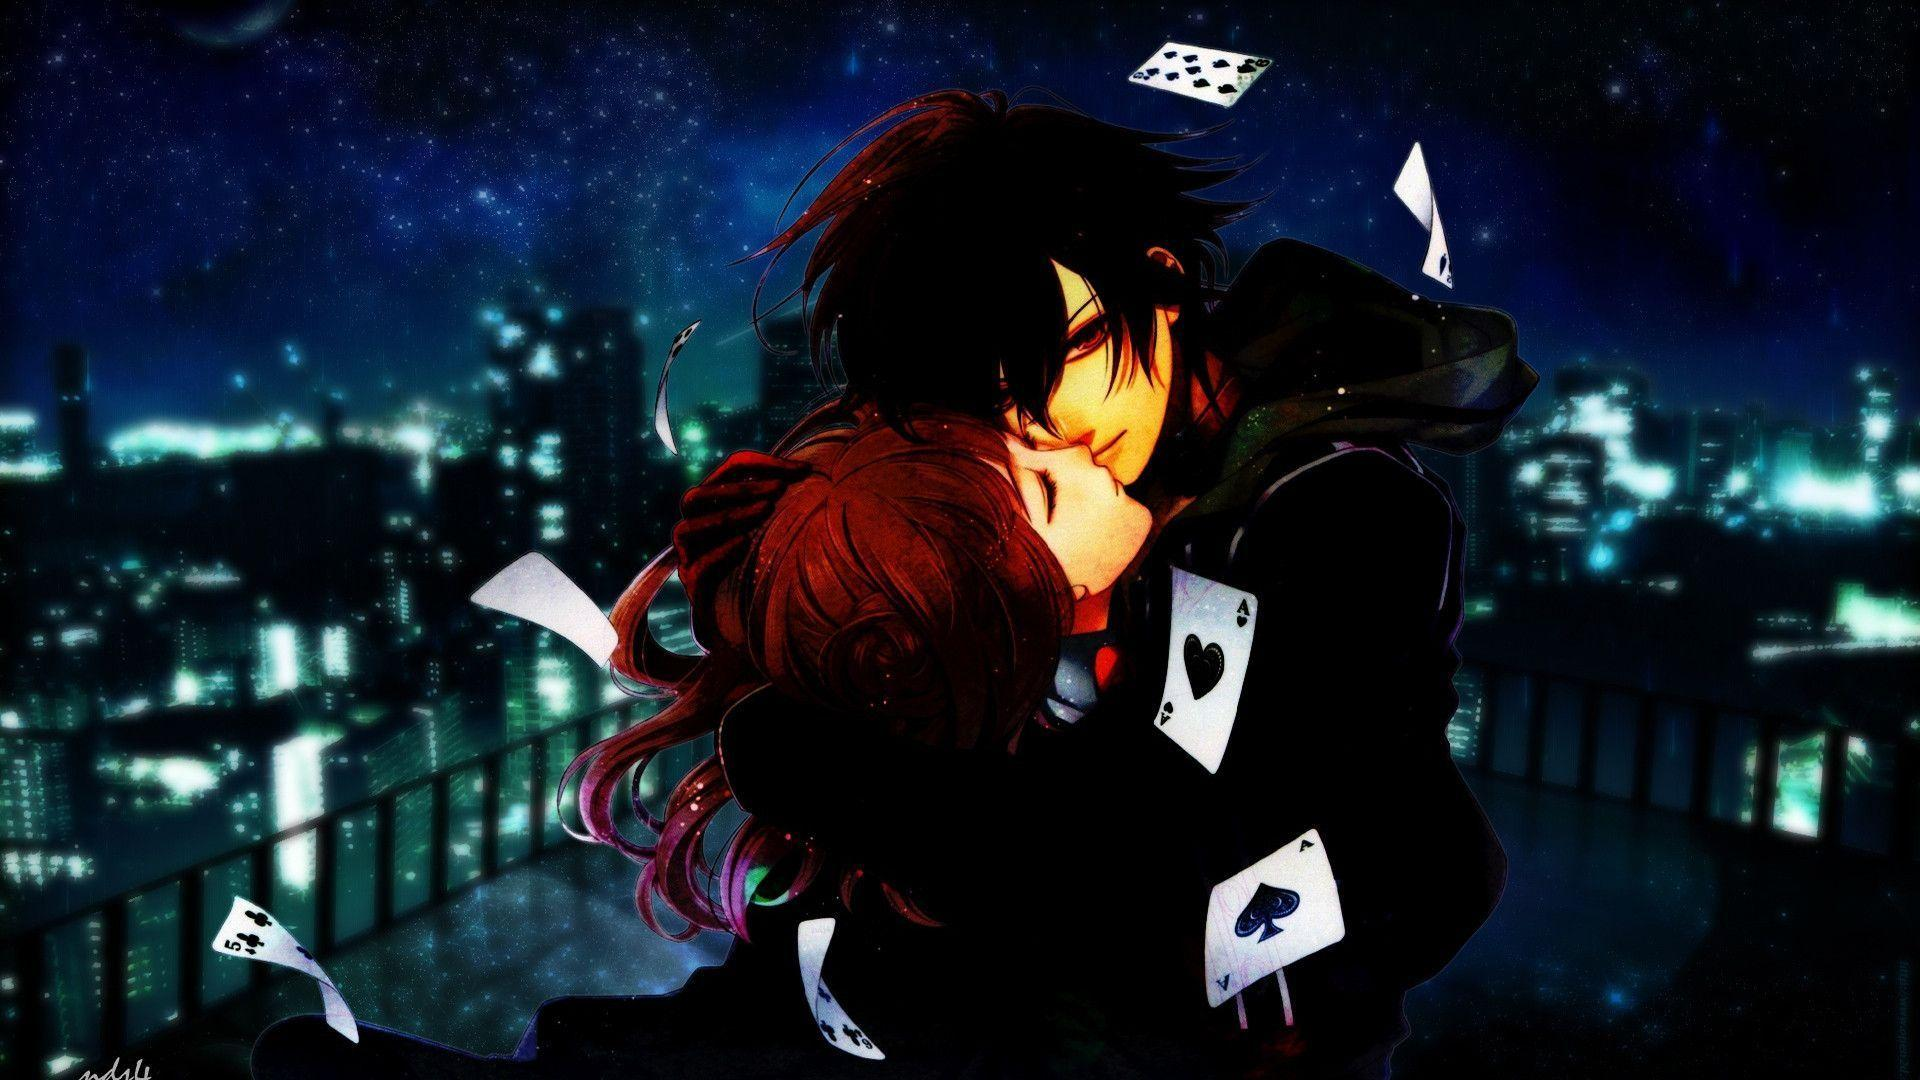 3d Love Boy And Girl Wallpaper : Anime Love Wallpapers - Wallpaper cave